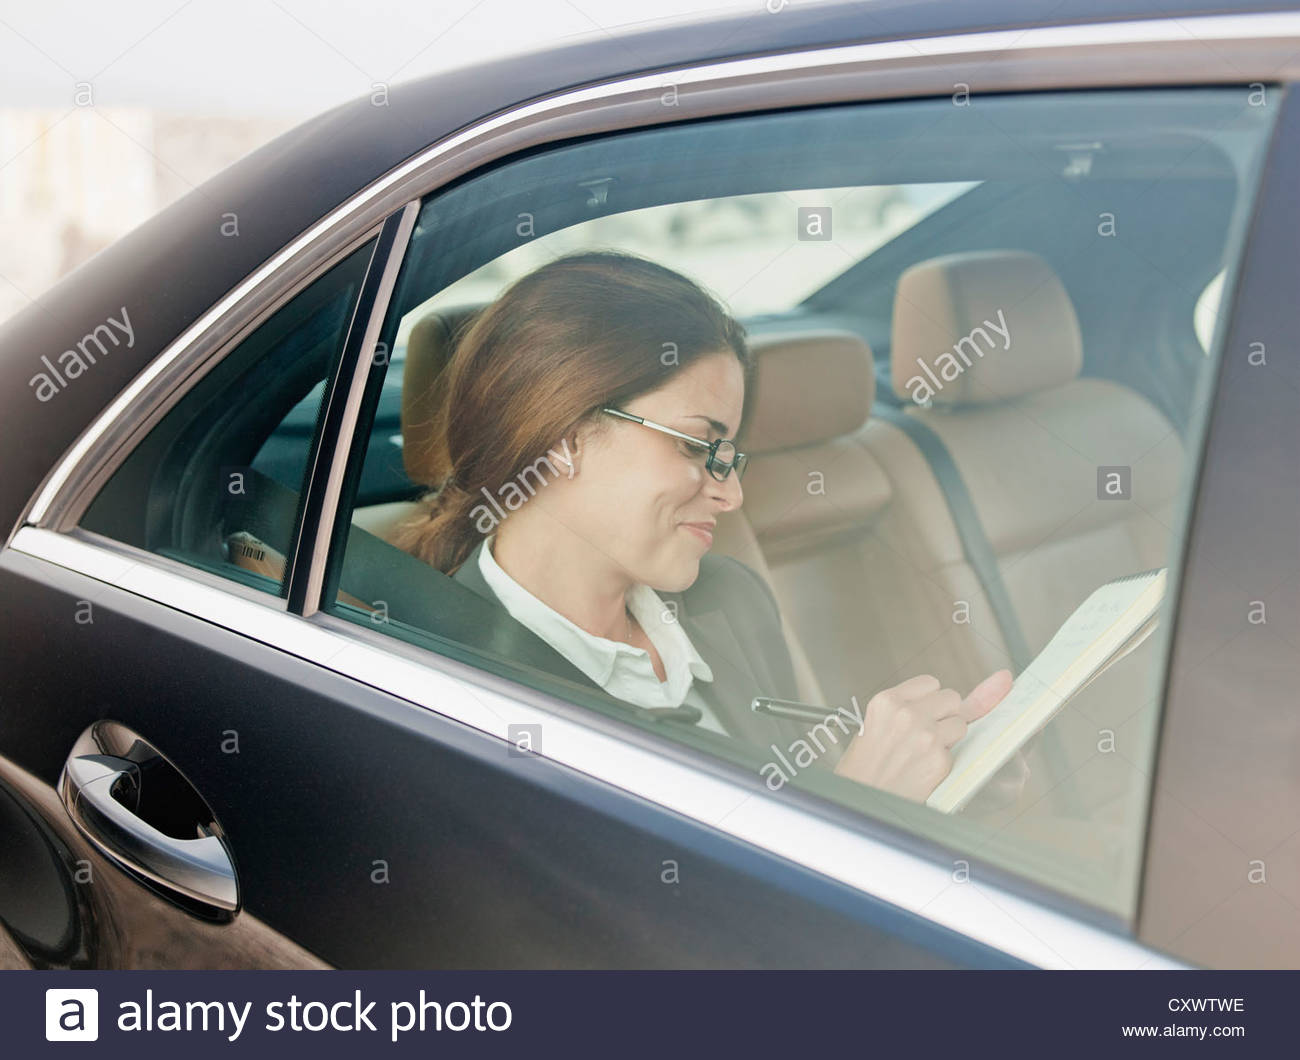 Businesswoman writing in backseat of car - Stock Image